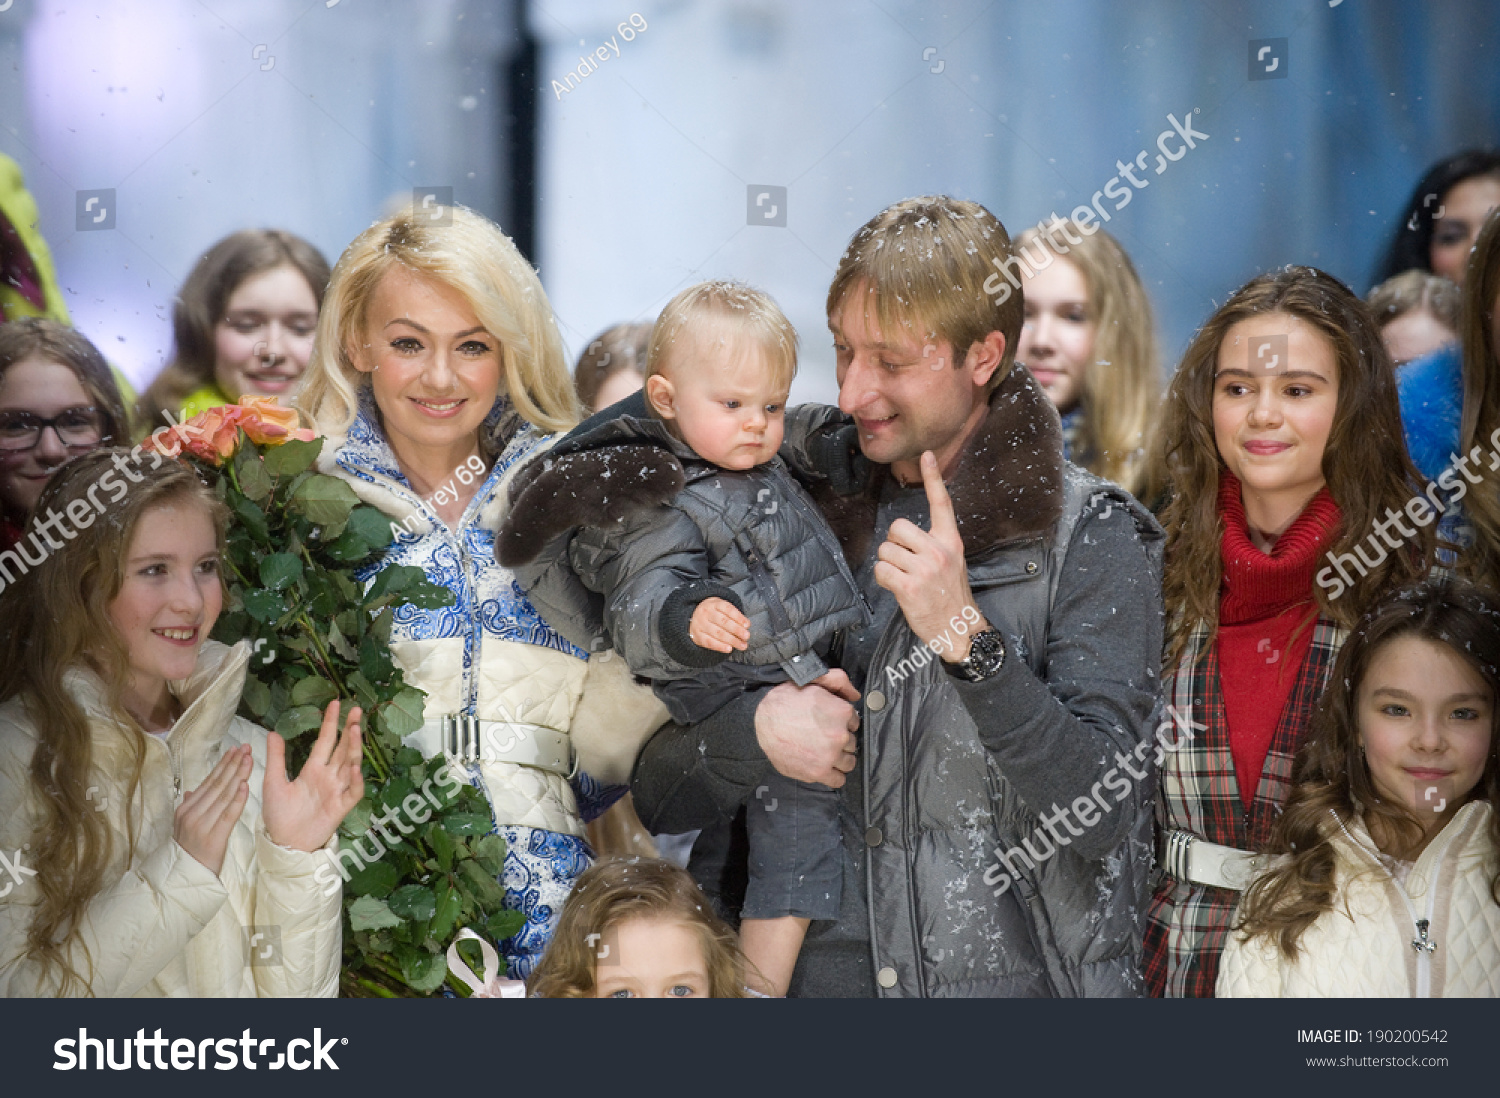 Plushenko and Rudkovskaya will shoot a reality show about their family life 04/12/2017 49